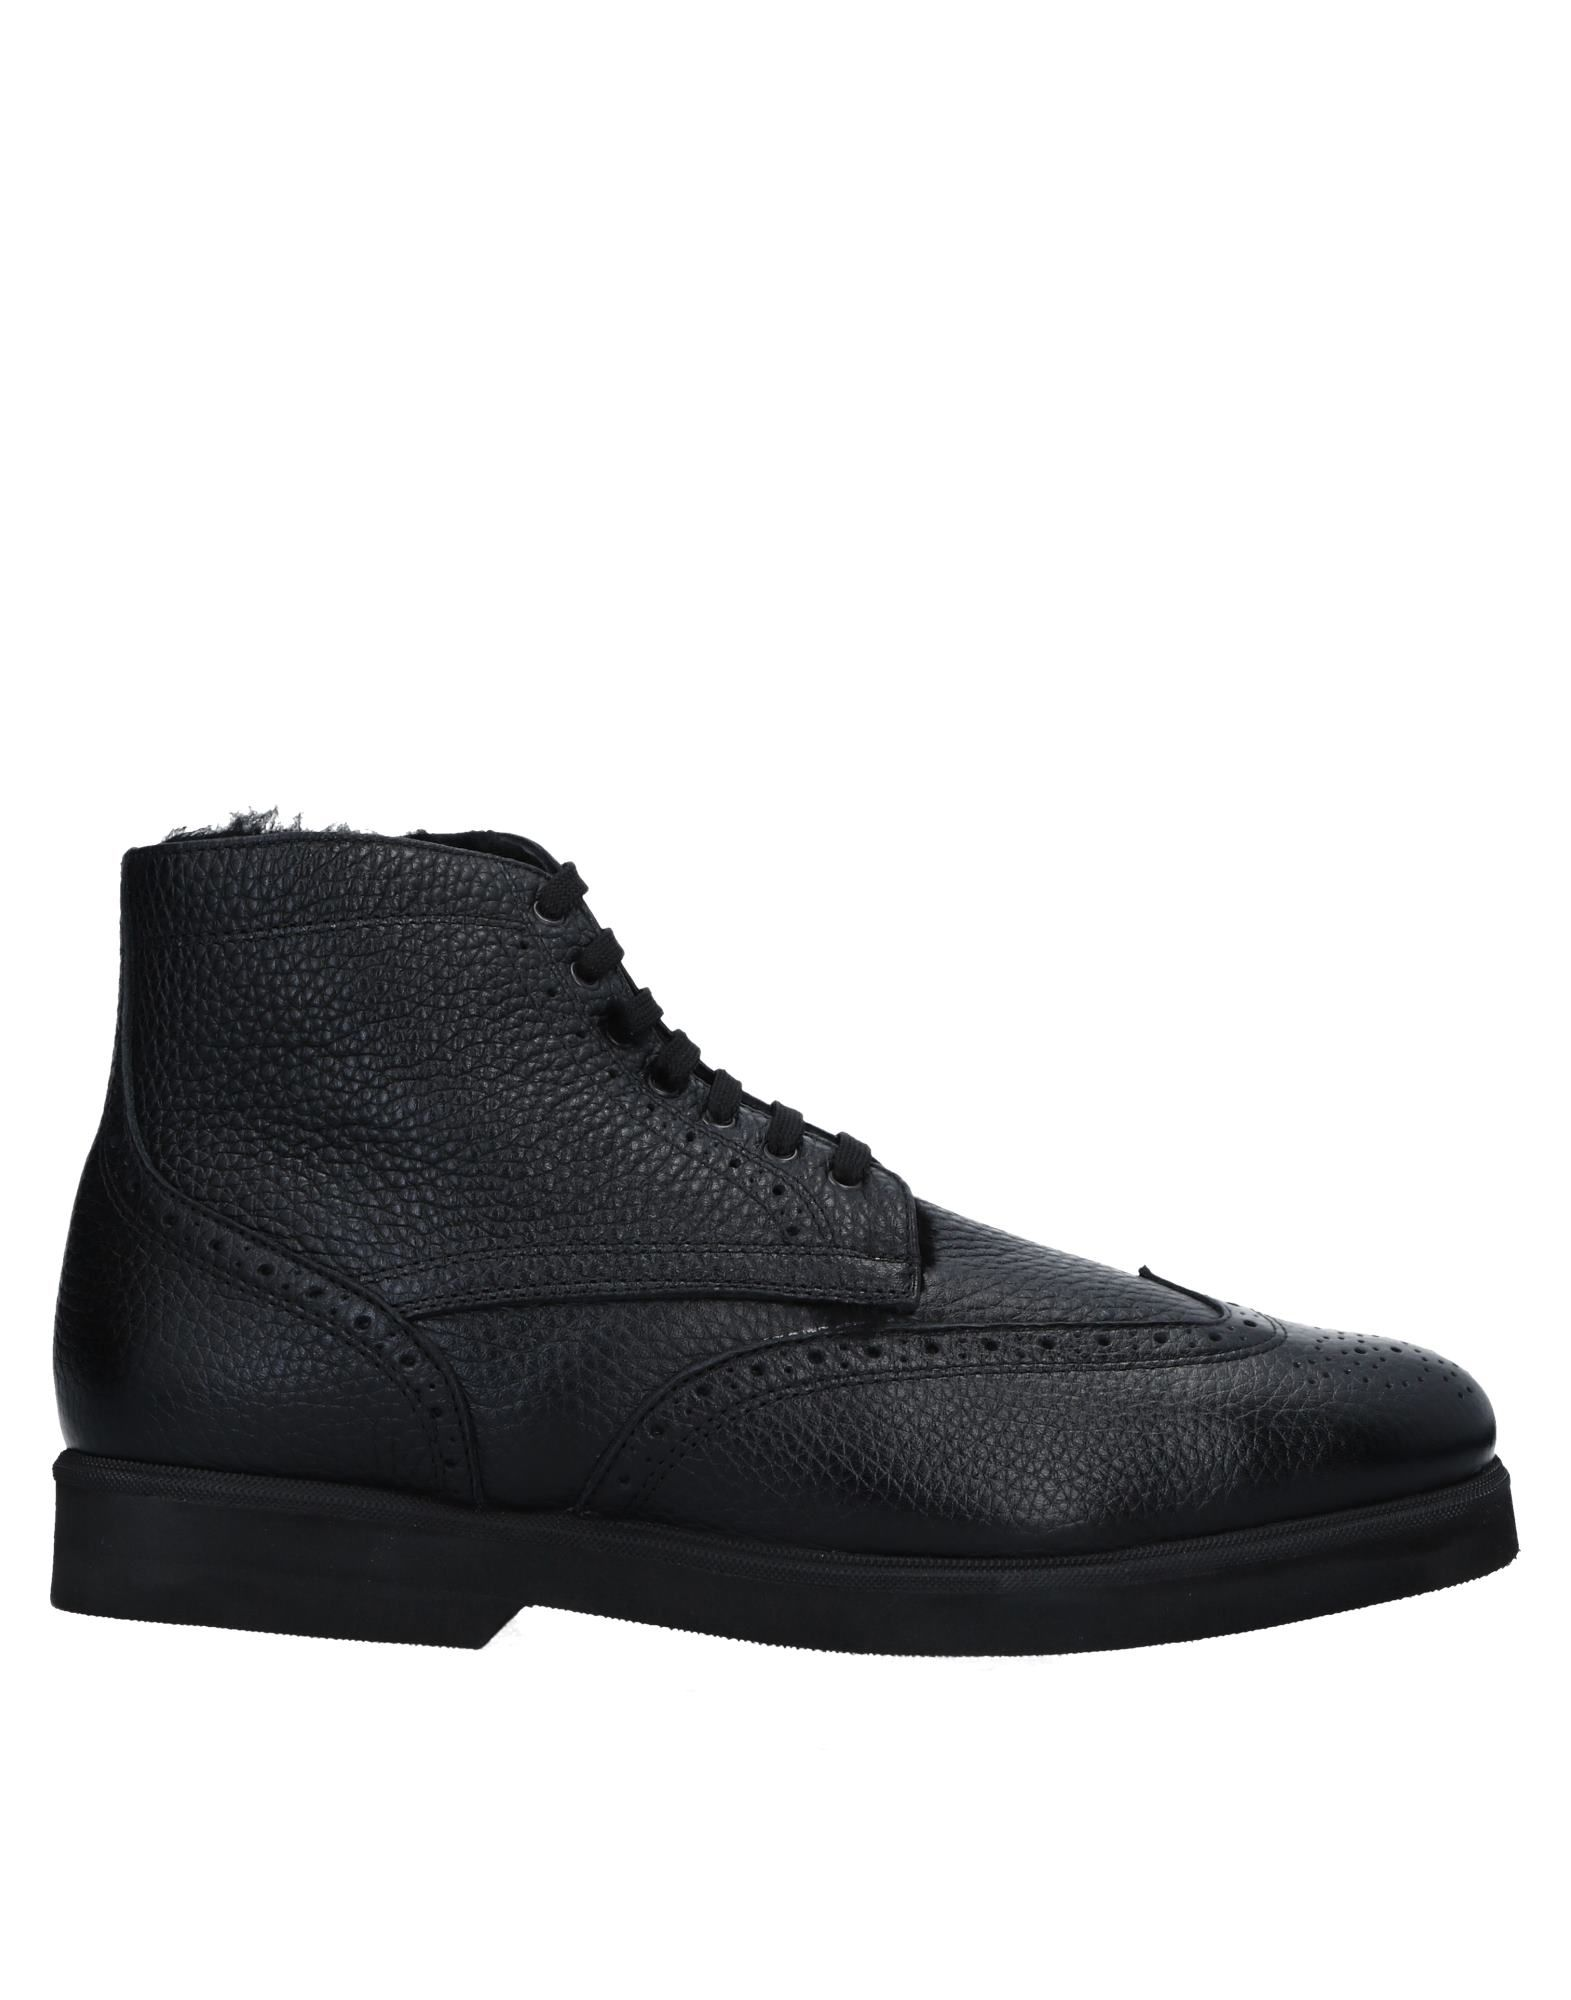 GOLD BROTHERS Boots in Black